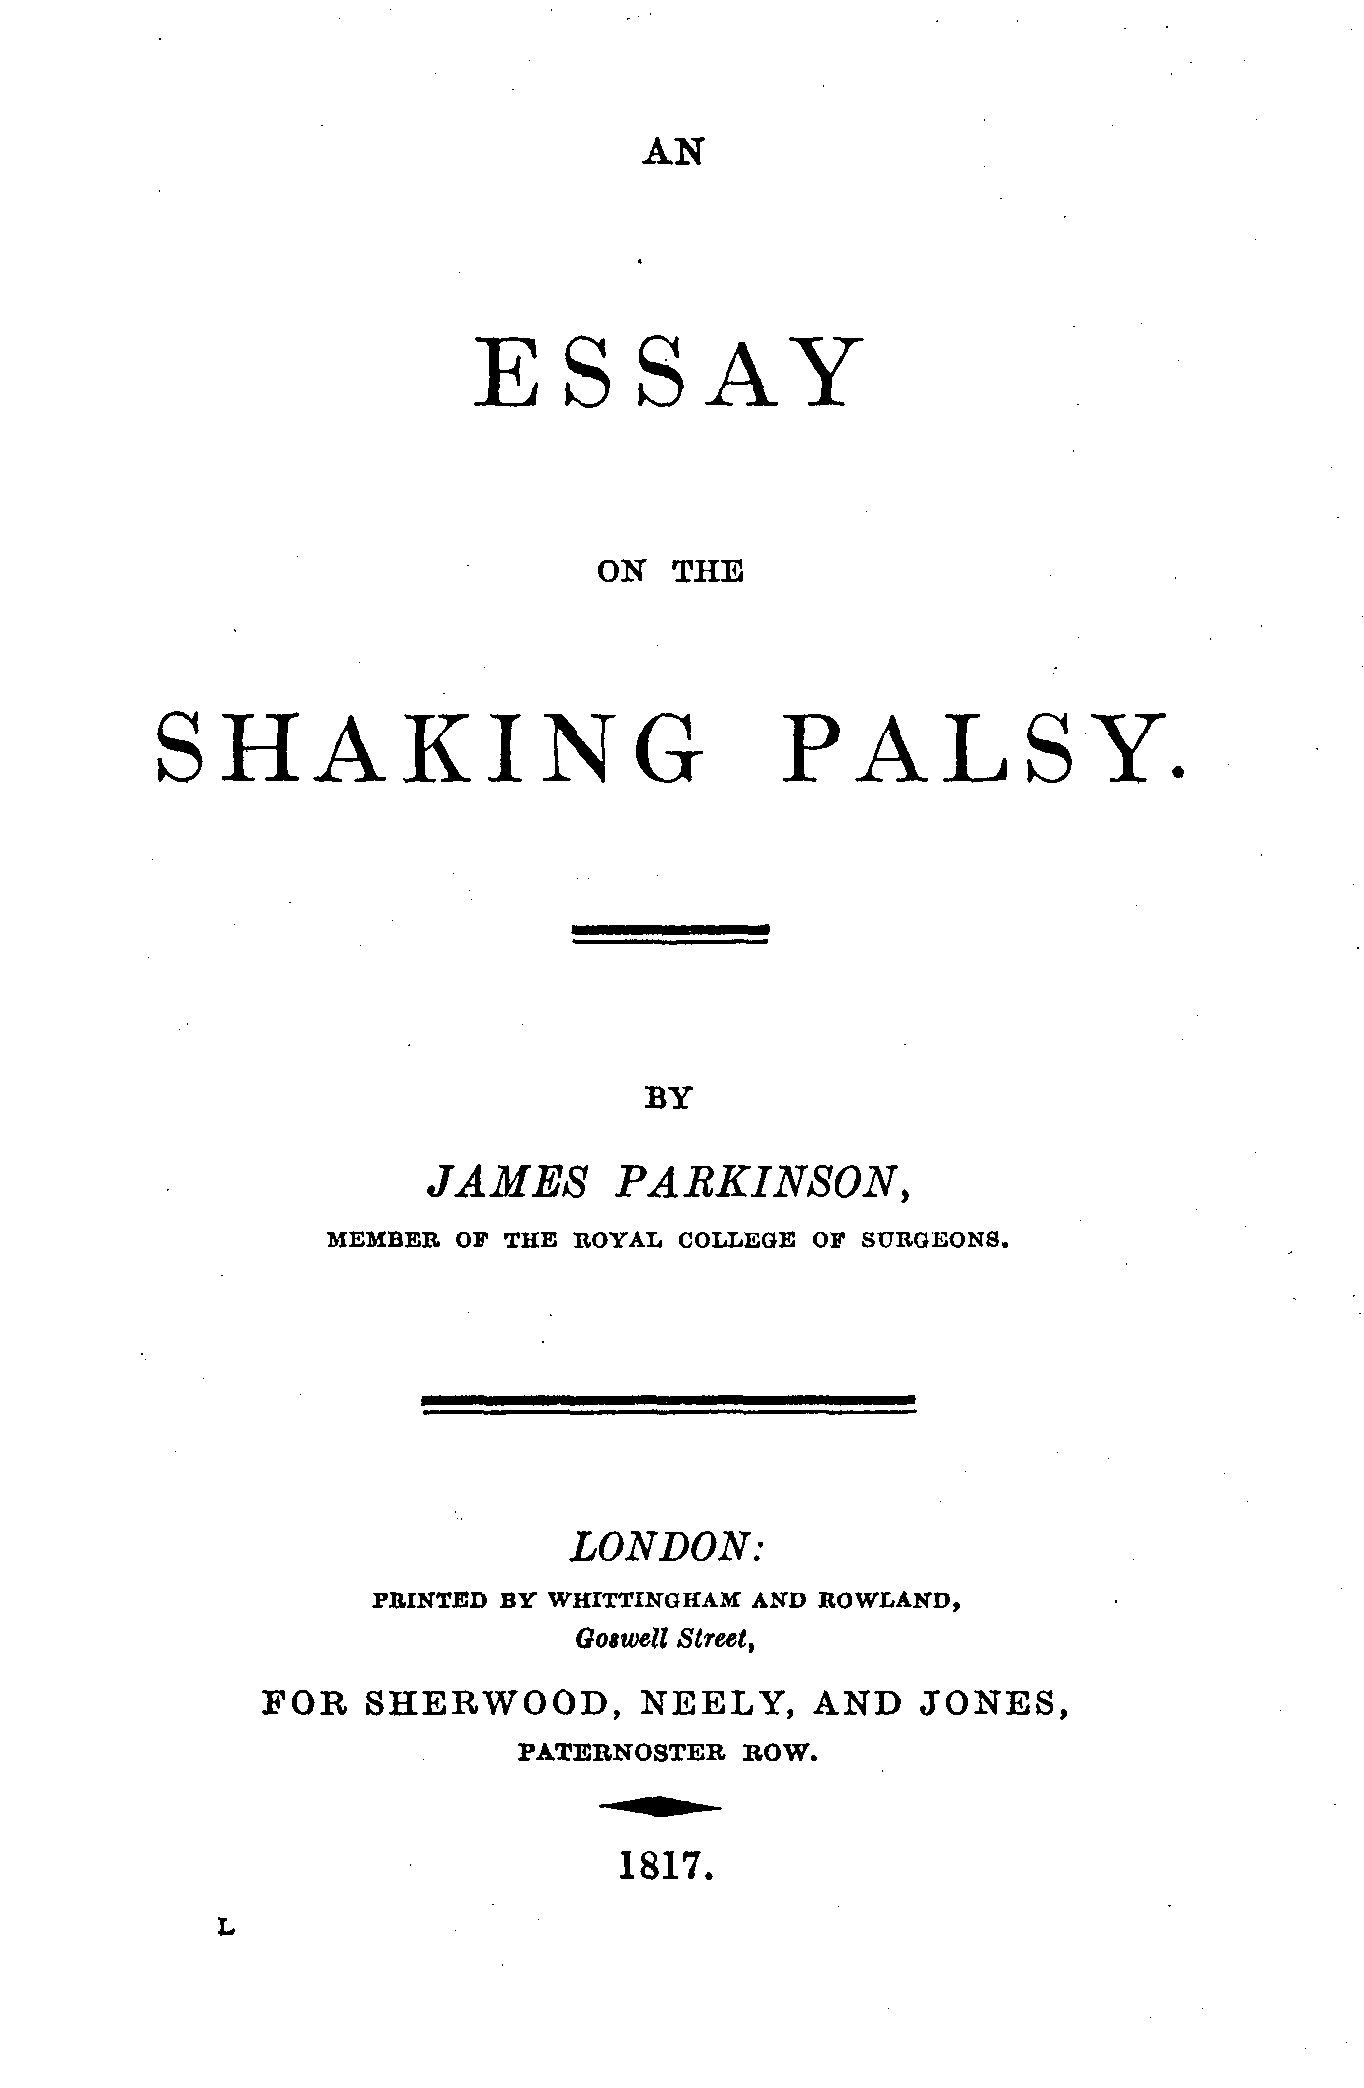 009 Essay Example Parkinson2c On The Shaking Palsy 28title Page29 What Is Cover Page For Awesome A An Does 2 Look Like Two Should I Put Of Full